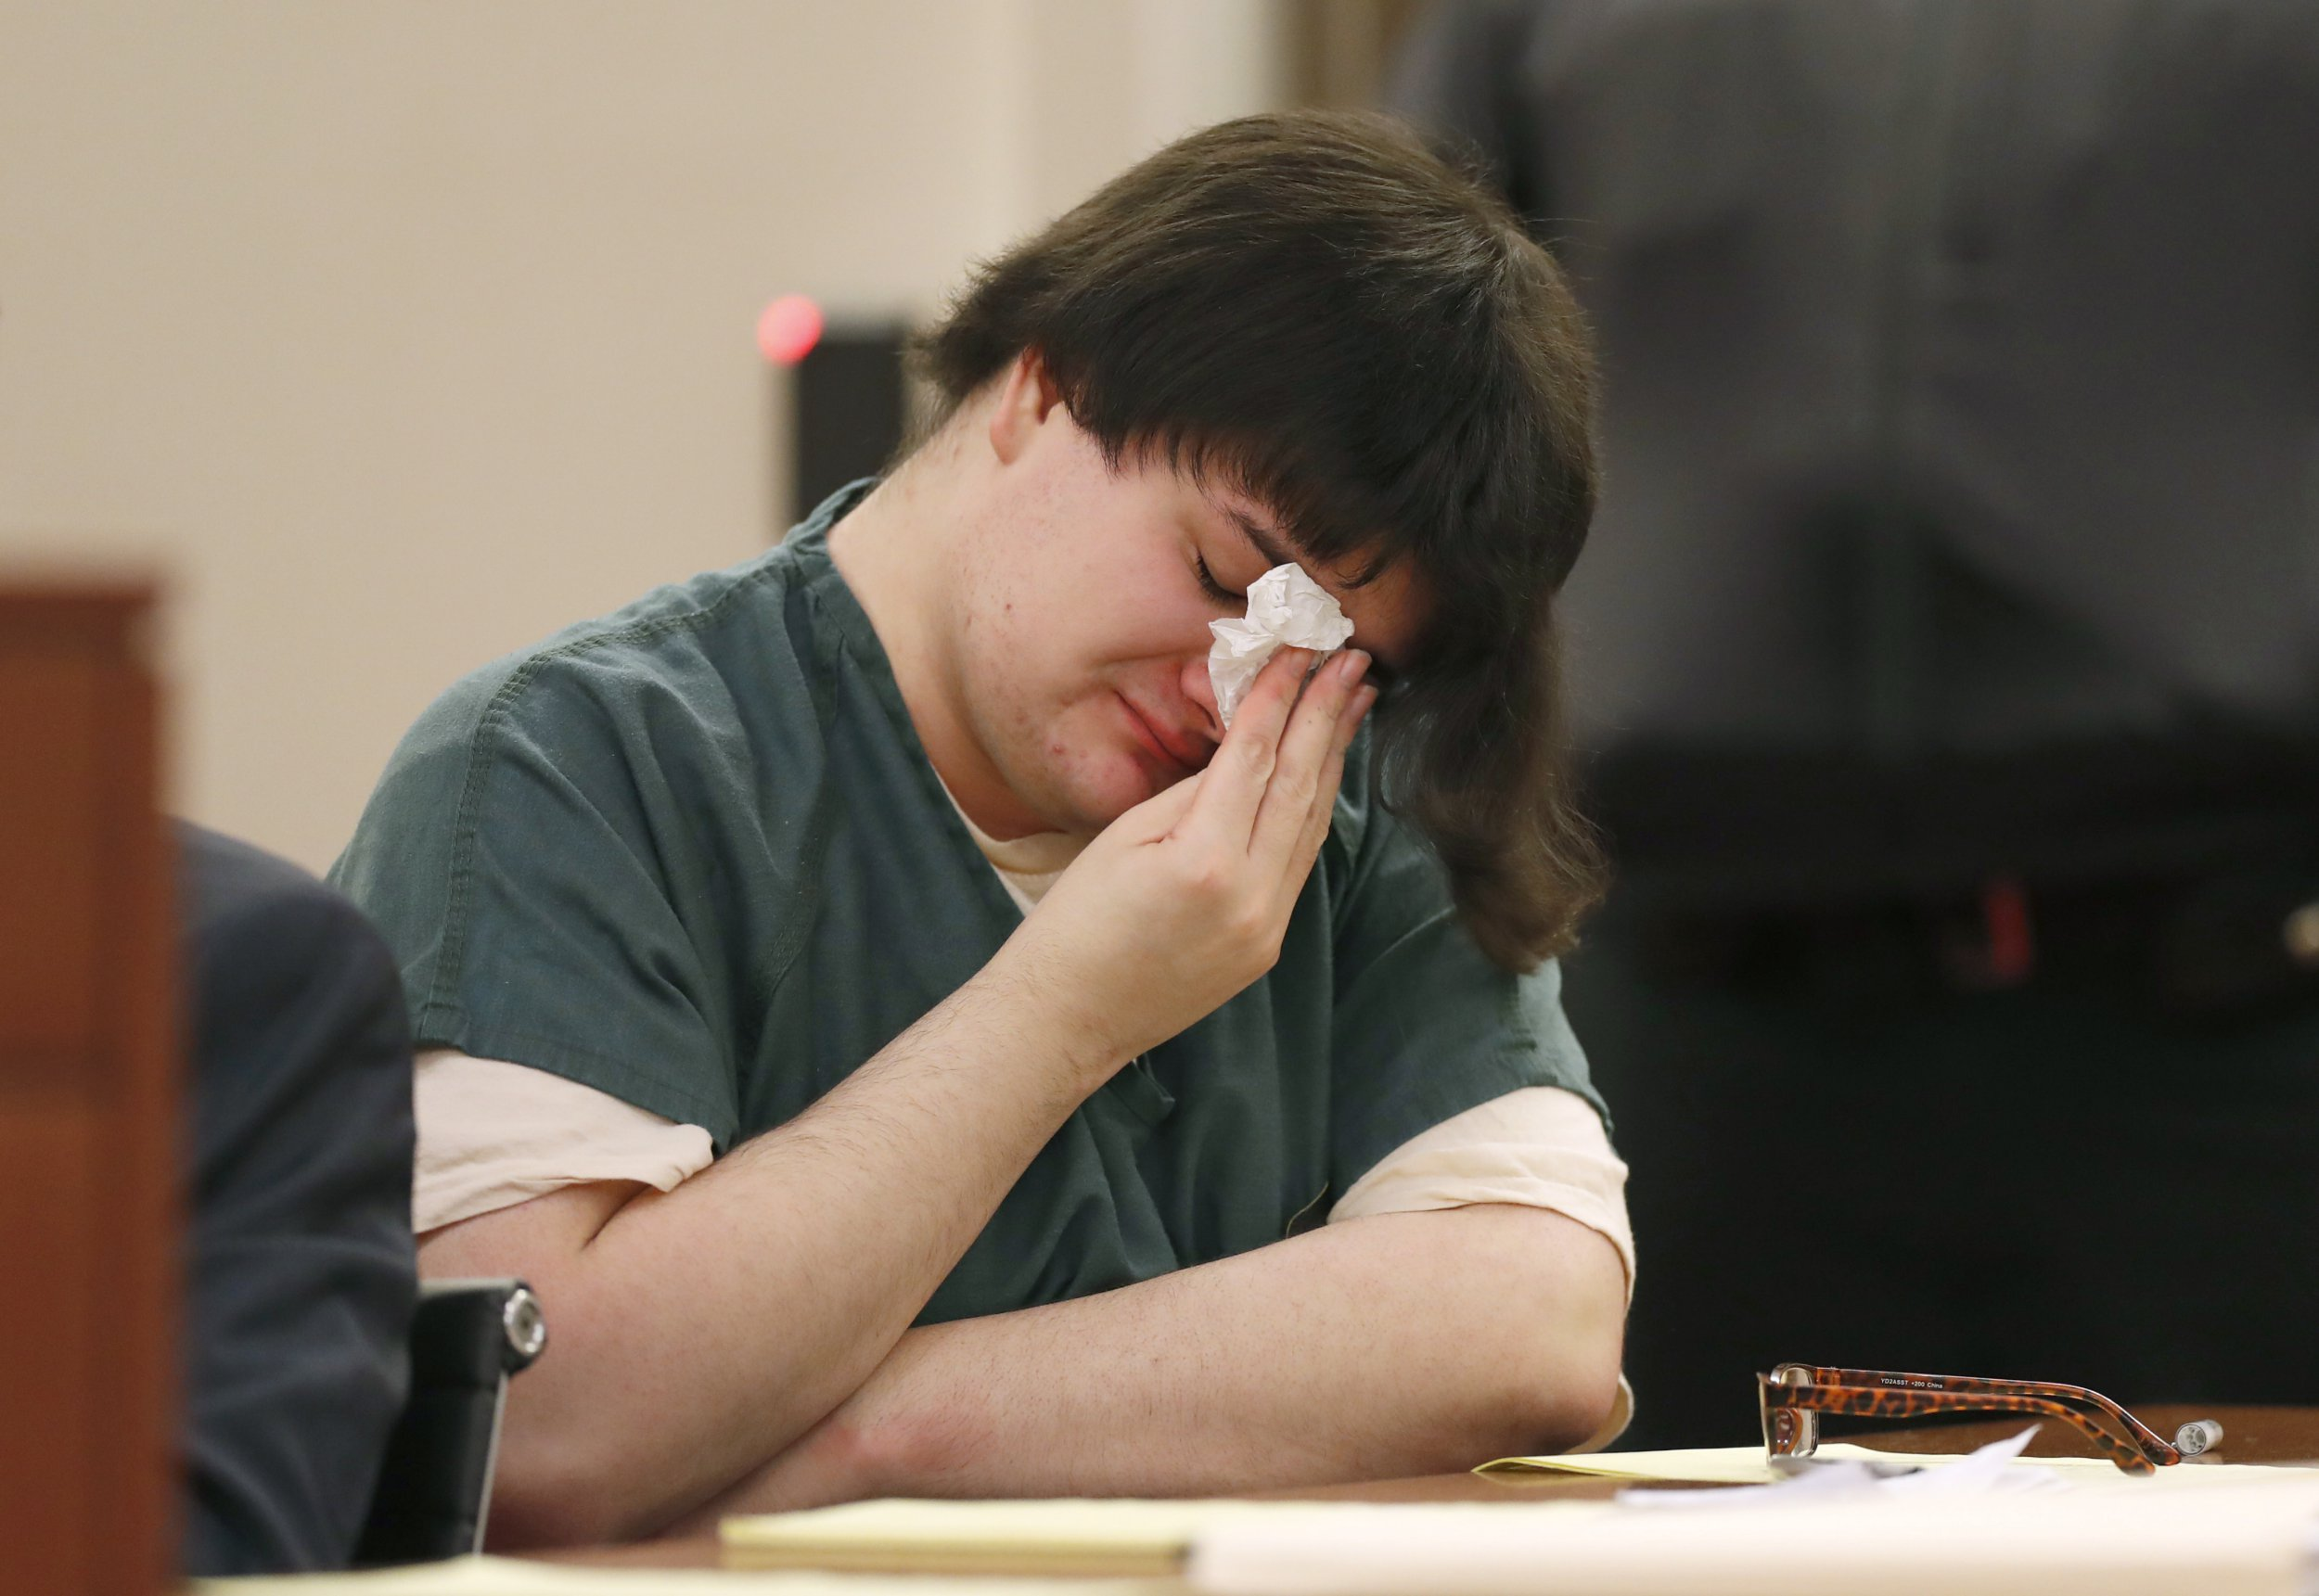 """Andrea Balcer wipes tears during her sentencing hearing for killing her parents, Tuesday, Dec. 4, 2018, at the Capital Judicial Center in Augusta, Maine. Balcer was 17 at the time of the Oct. 31, 2016, stabbings at their Winthrop home. The teenager told a police dispatcher that she """"snapped"""" on the night of the stabbings. (AP Photo/Robert F. Bukaty)"""